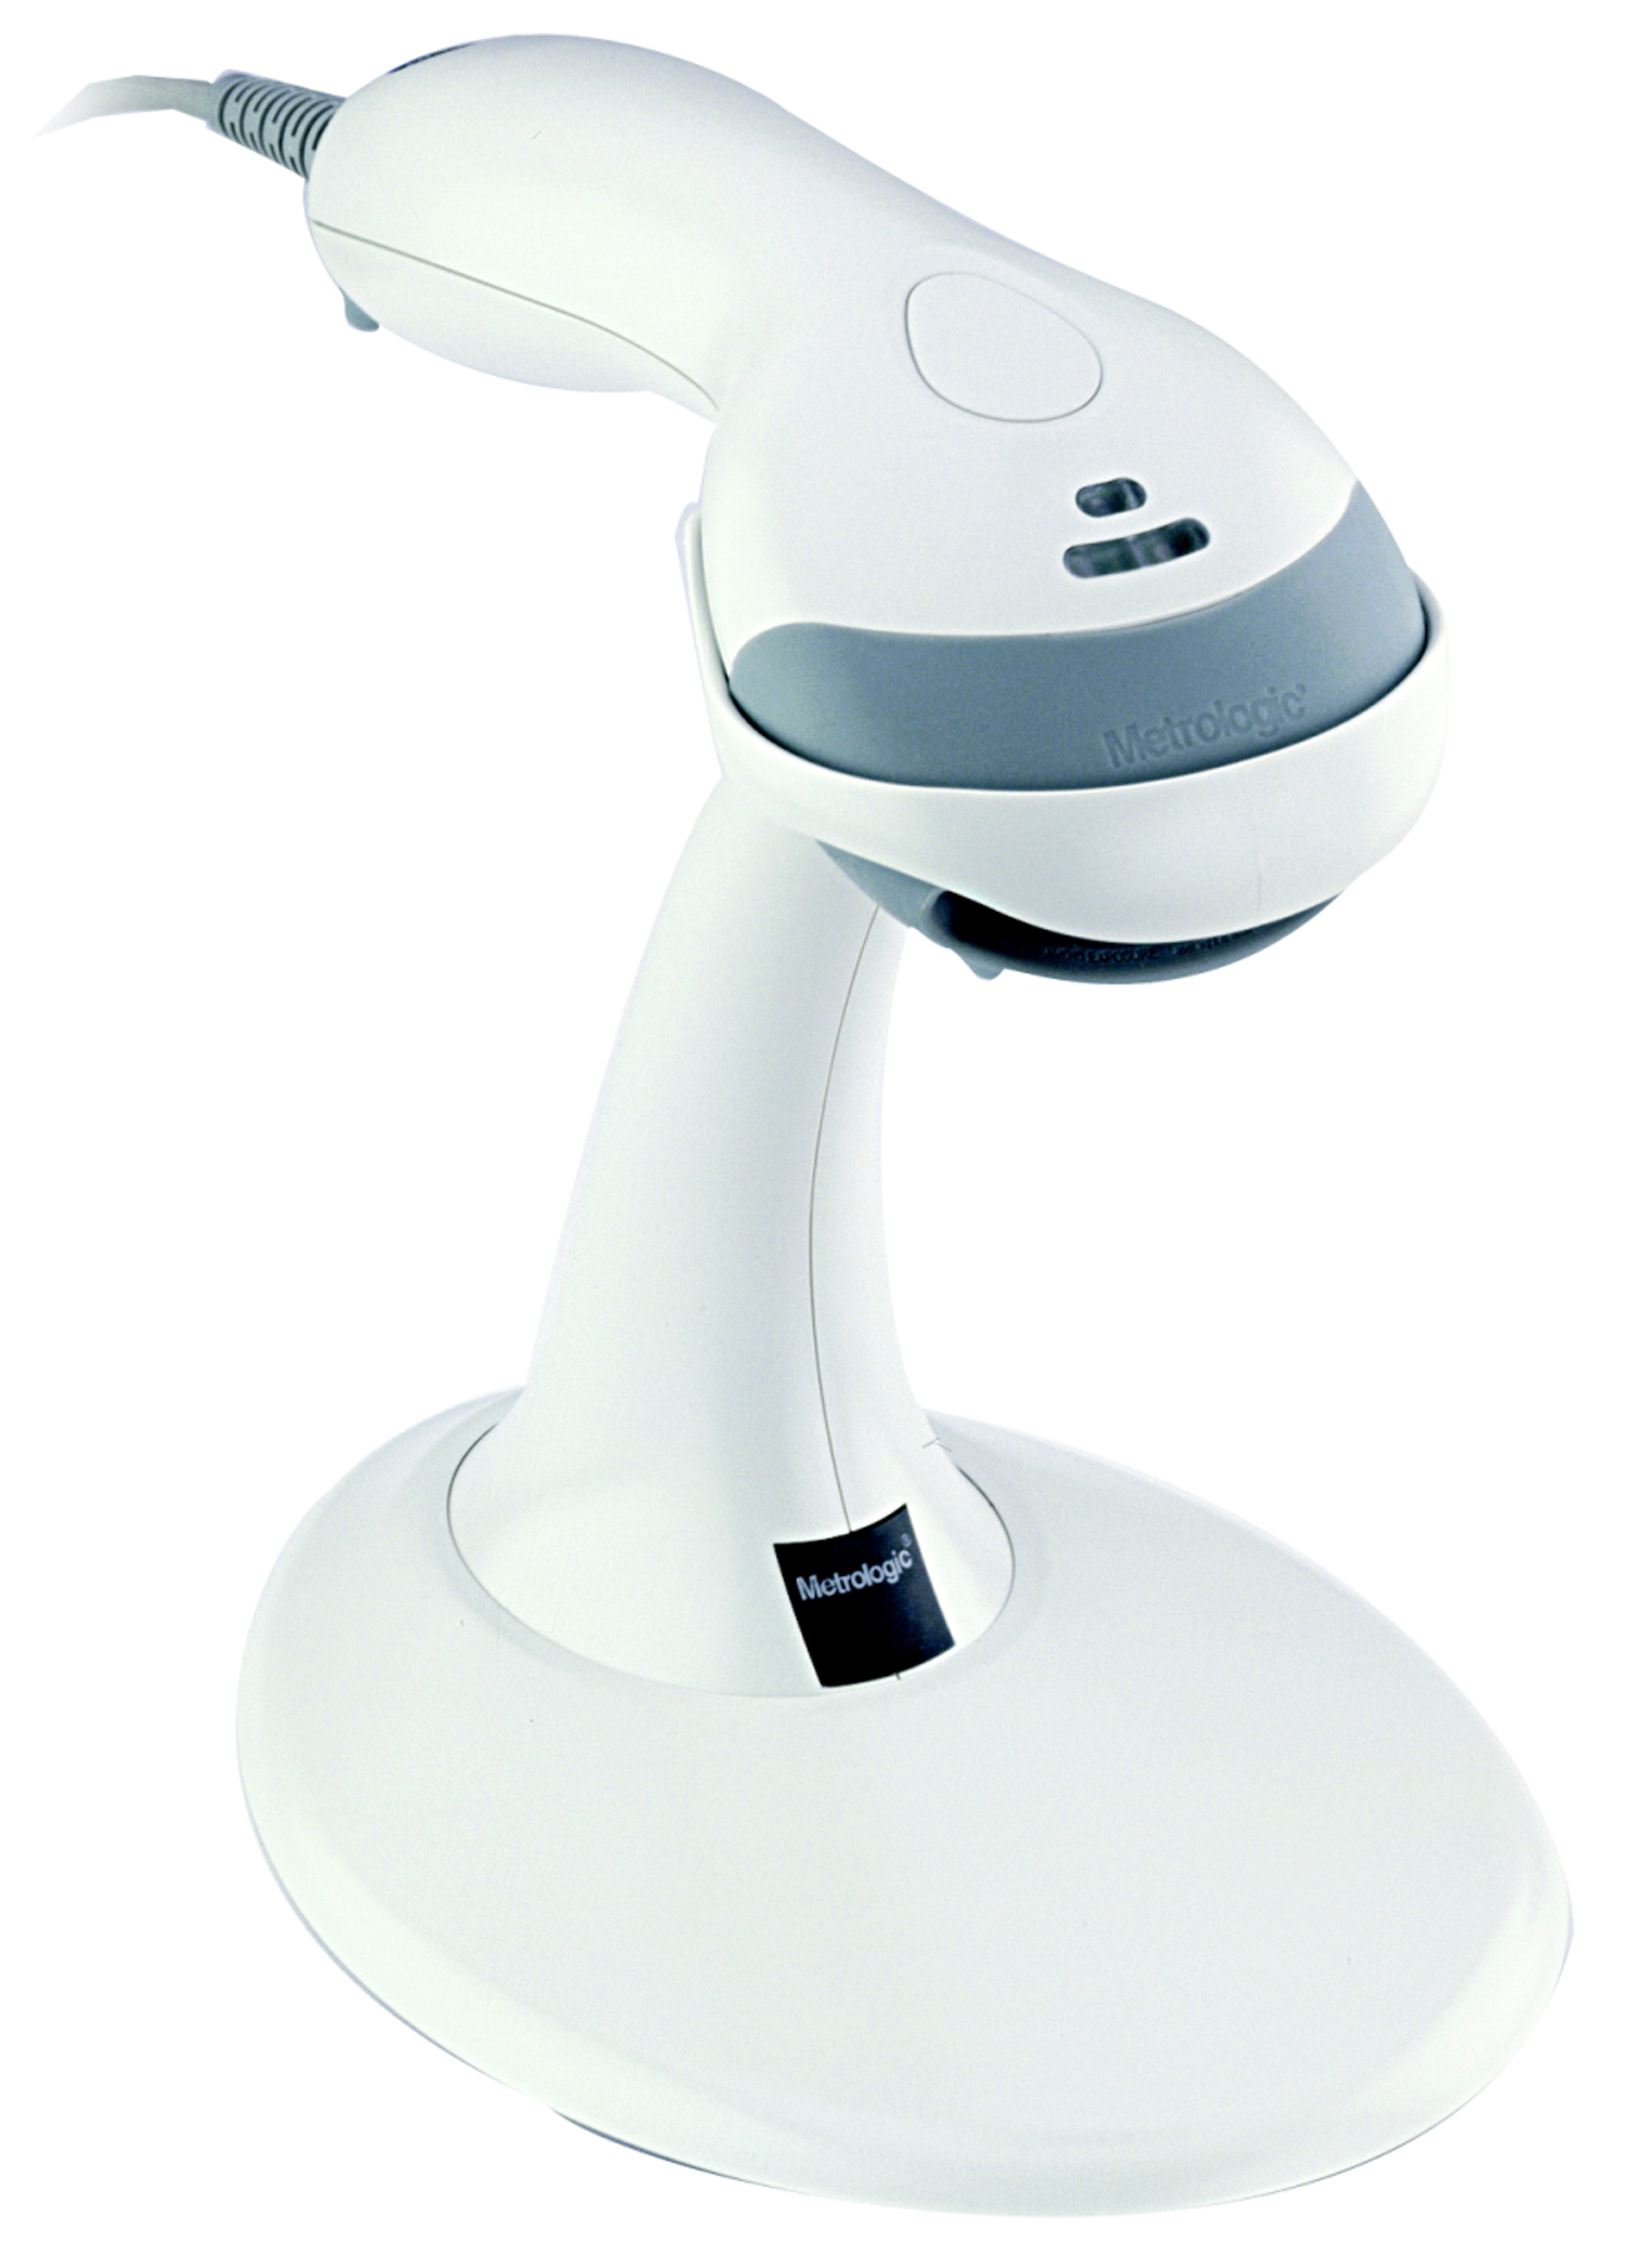 Metrologic / Honeywell MS9520 Voyager® Apotheek scanner